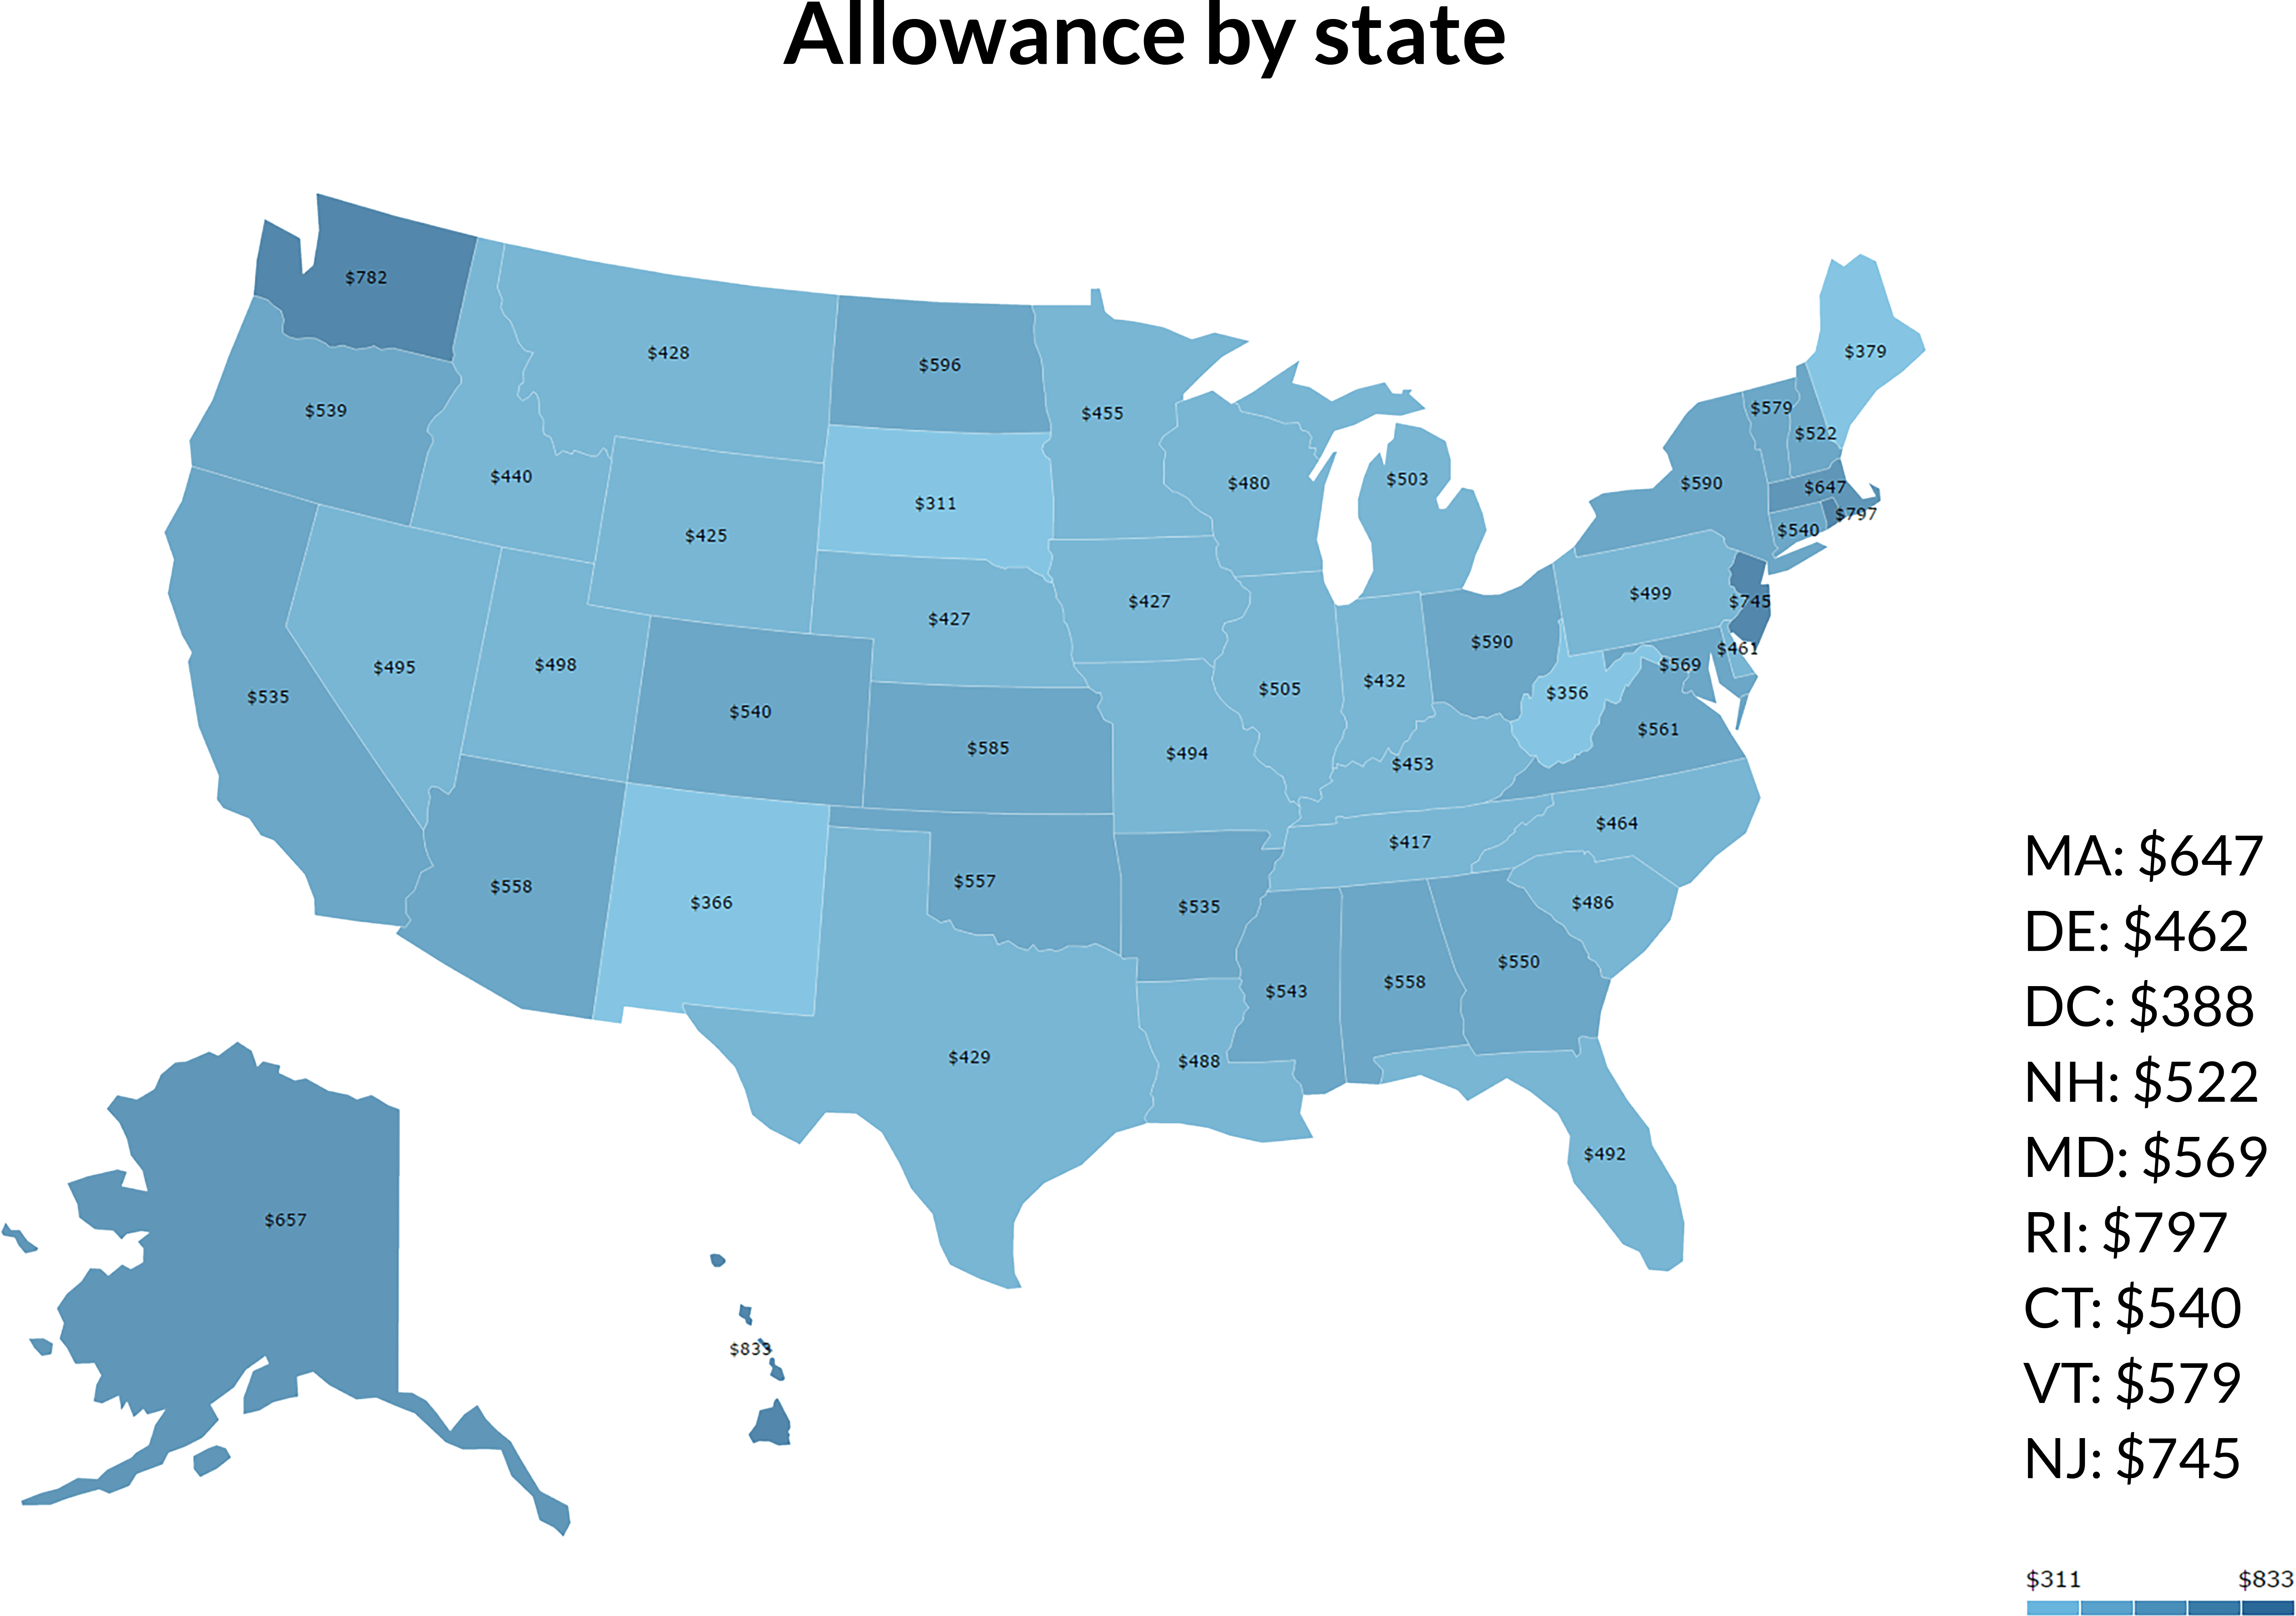 Allowance by state